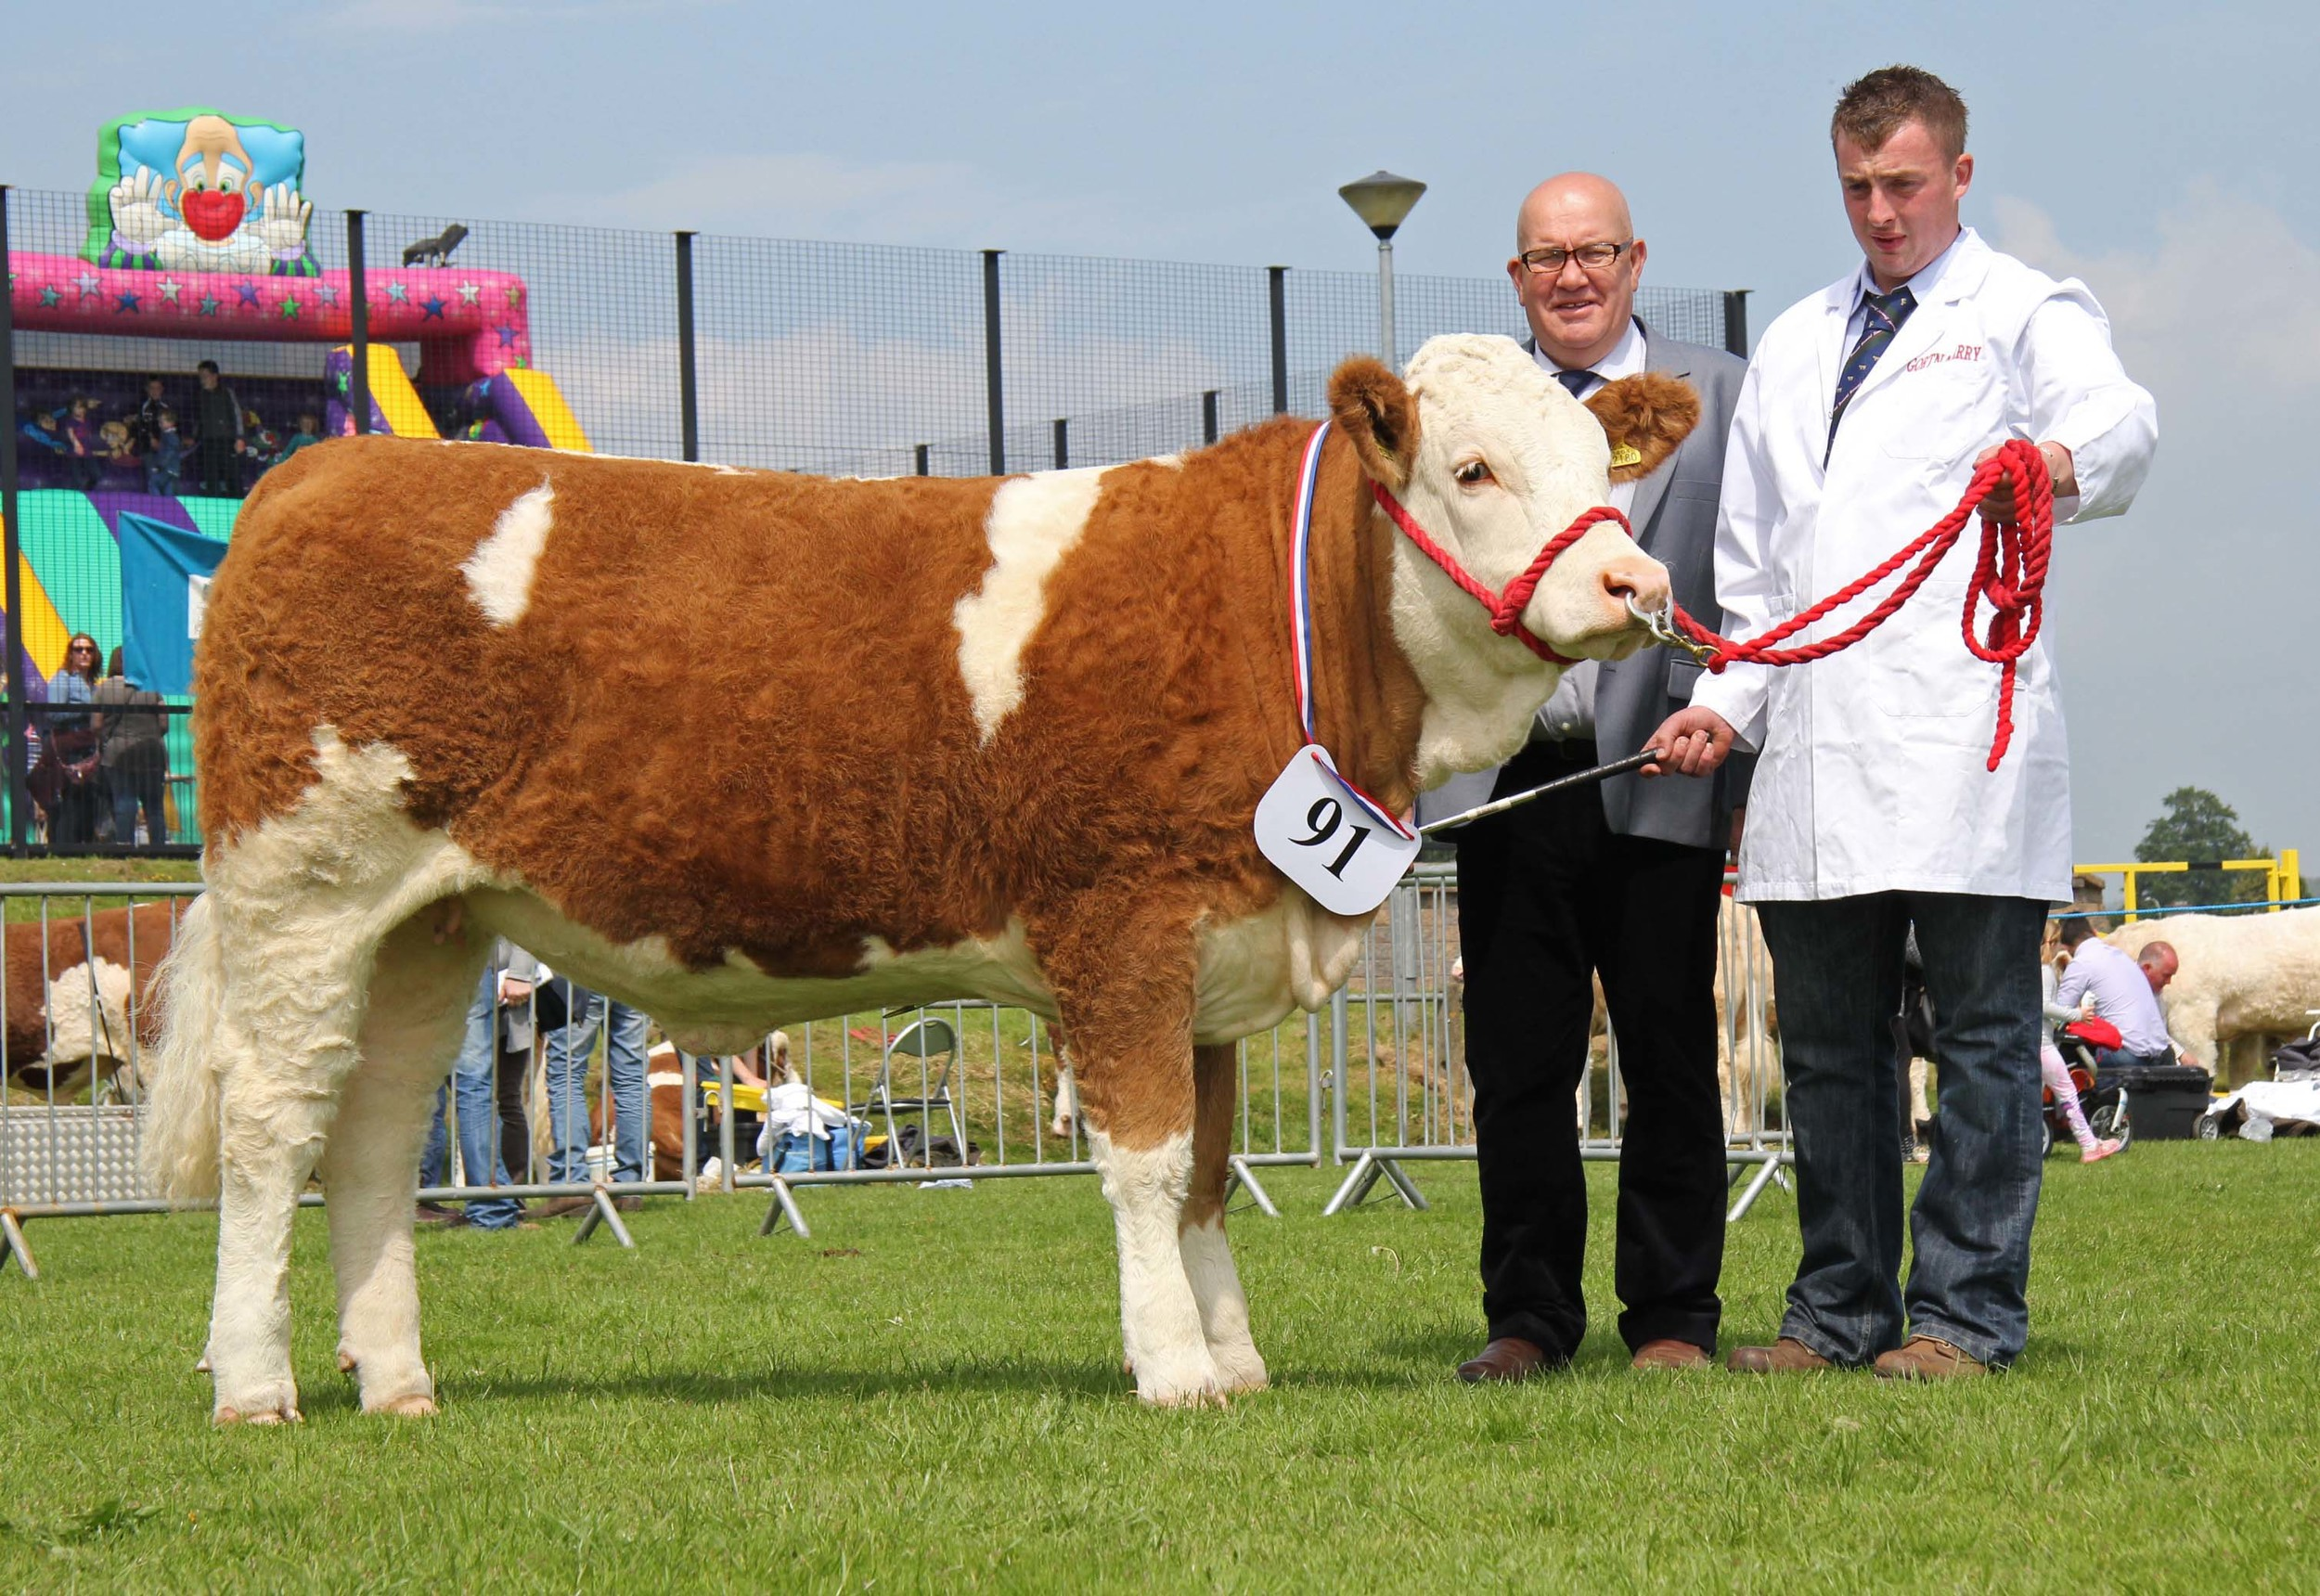 First-time exhibitor Aaron Smyth, Maghera, with his fourth placed heifer Newbiemains Goldstar at Ballymena Show. Included is judge Tony O'Leary.